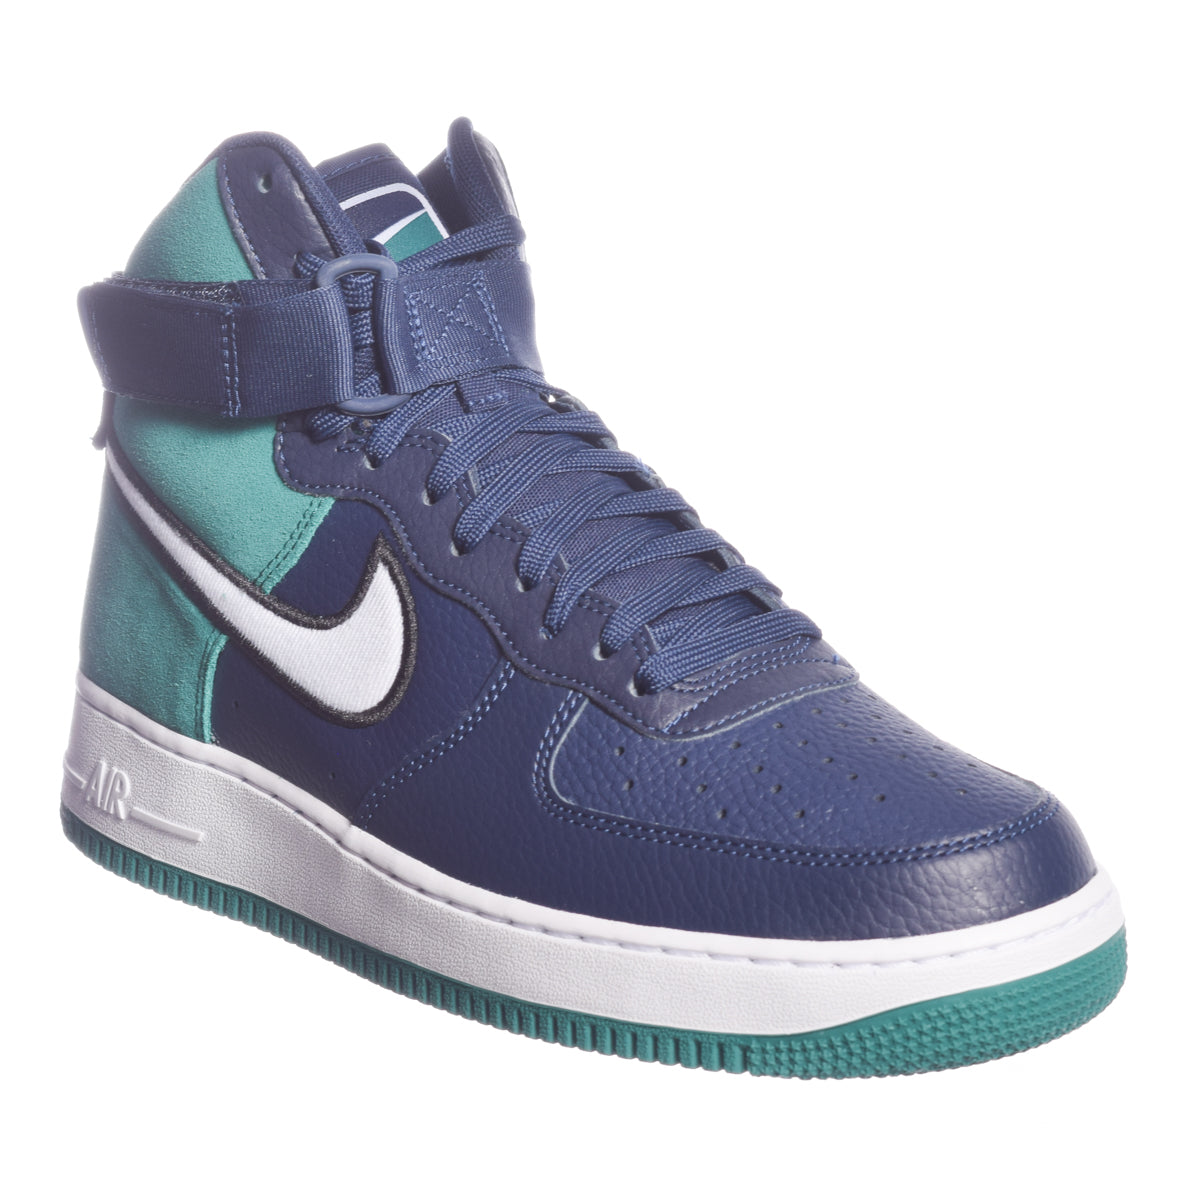 Nike Force High 1 Lv8 Navygreen '07 Air qpSUMzV